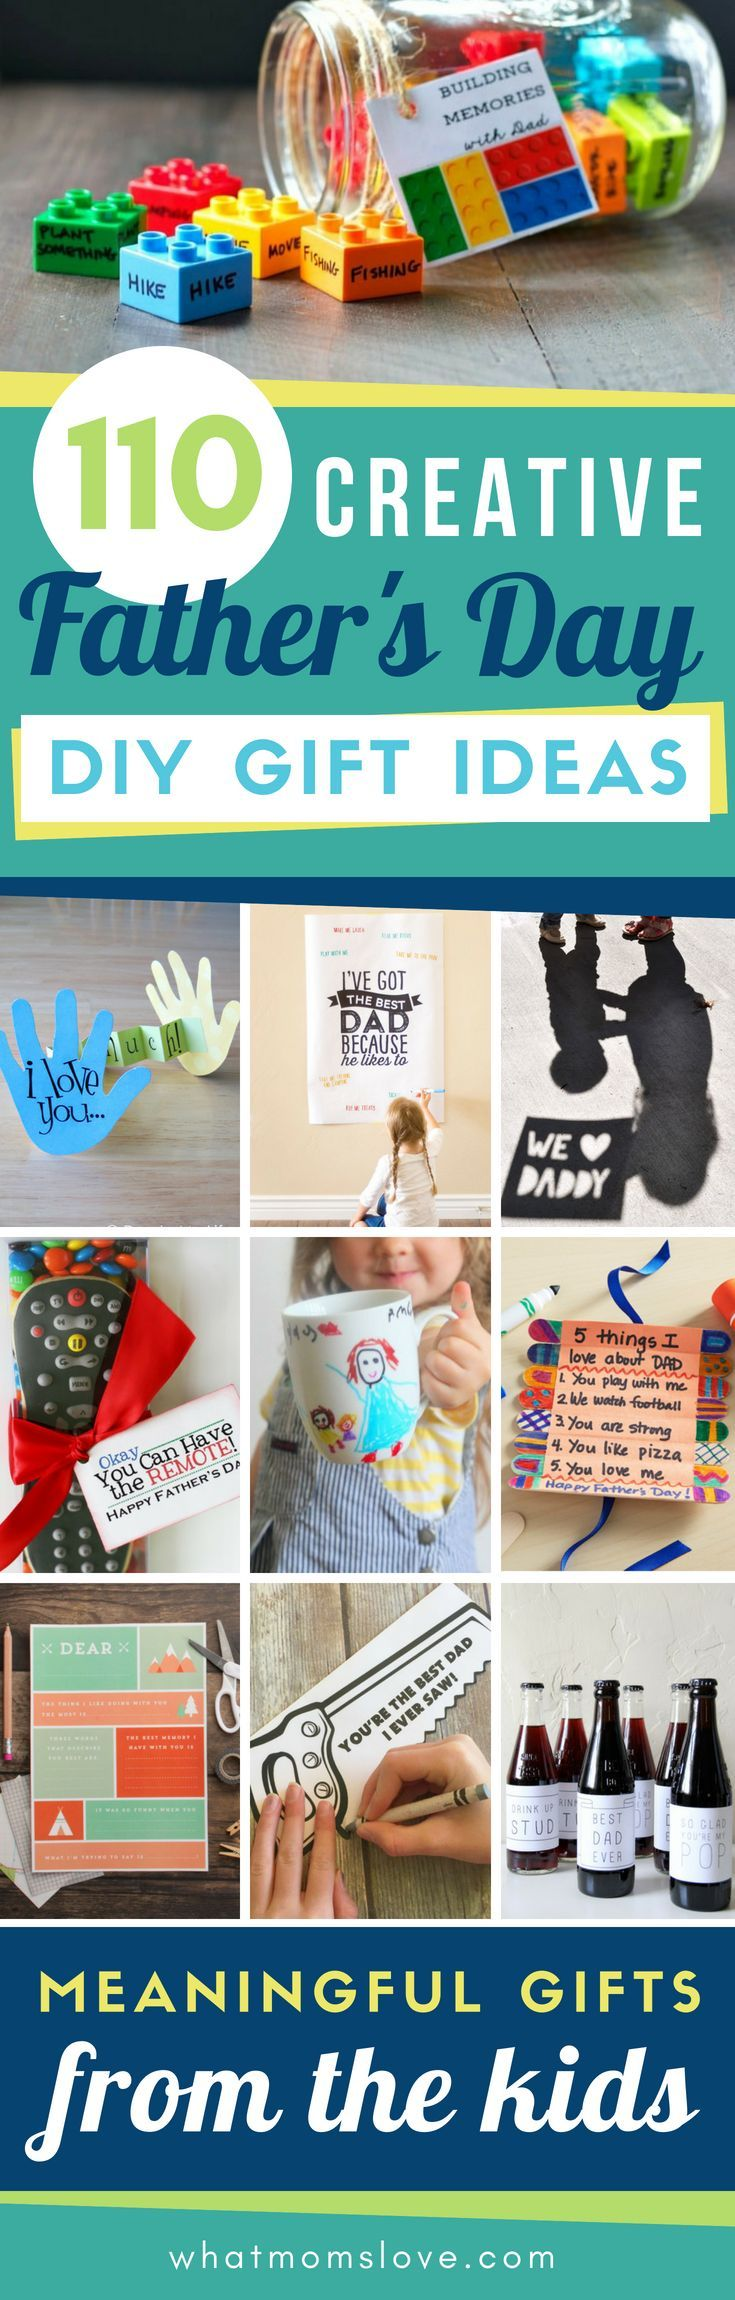 Diy fathers day gift ideas from kids fathers day diy